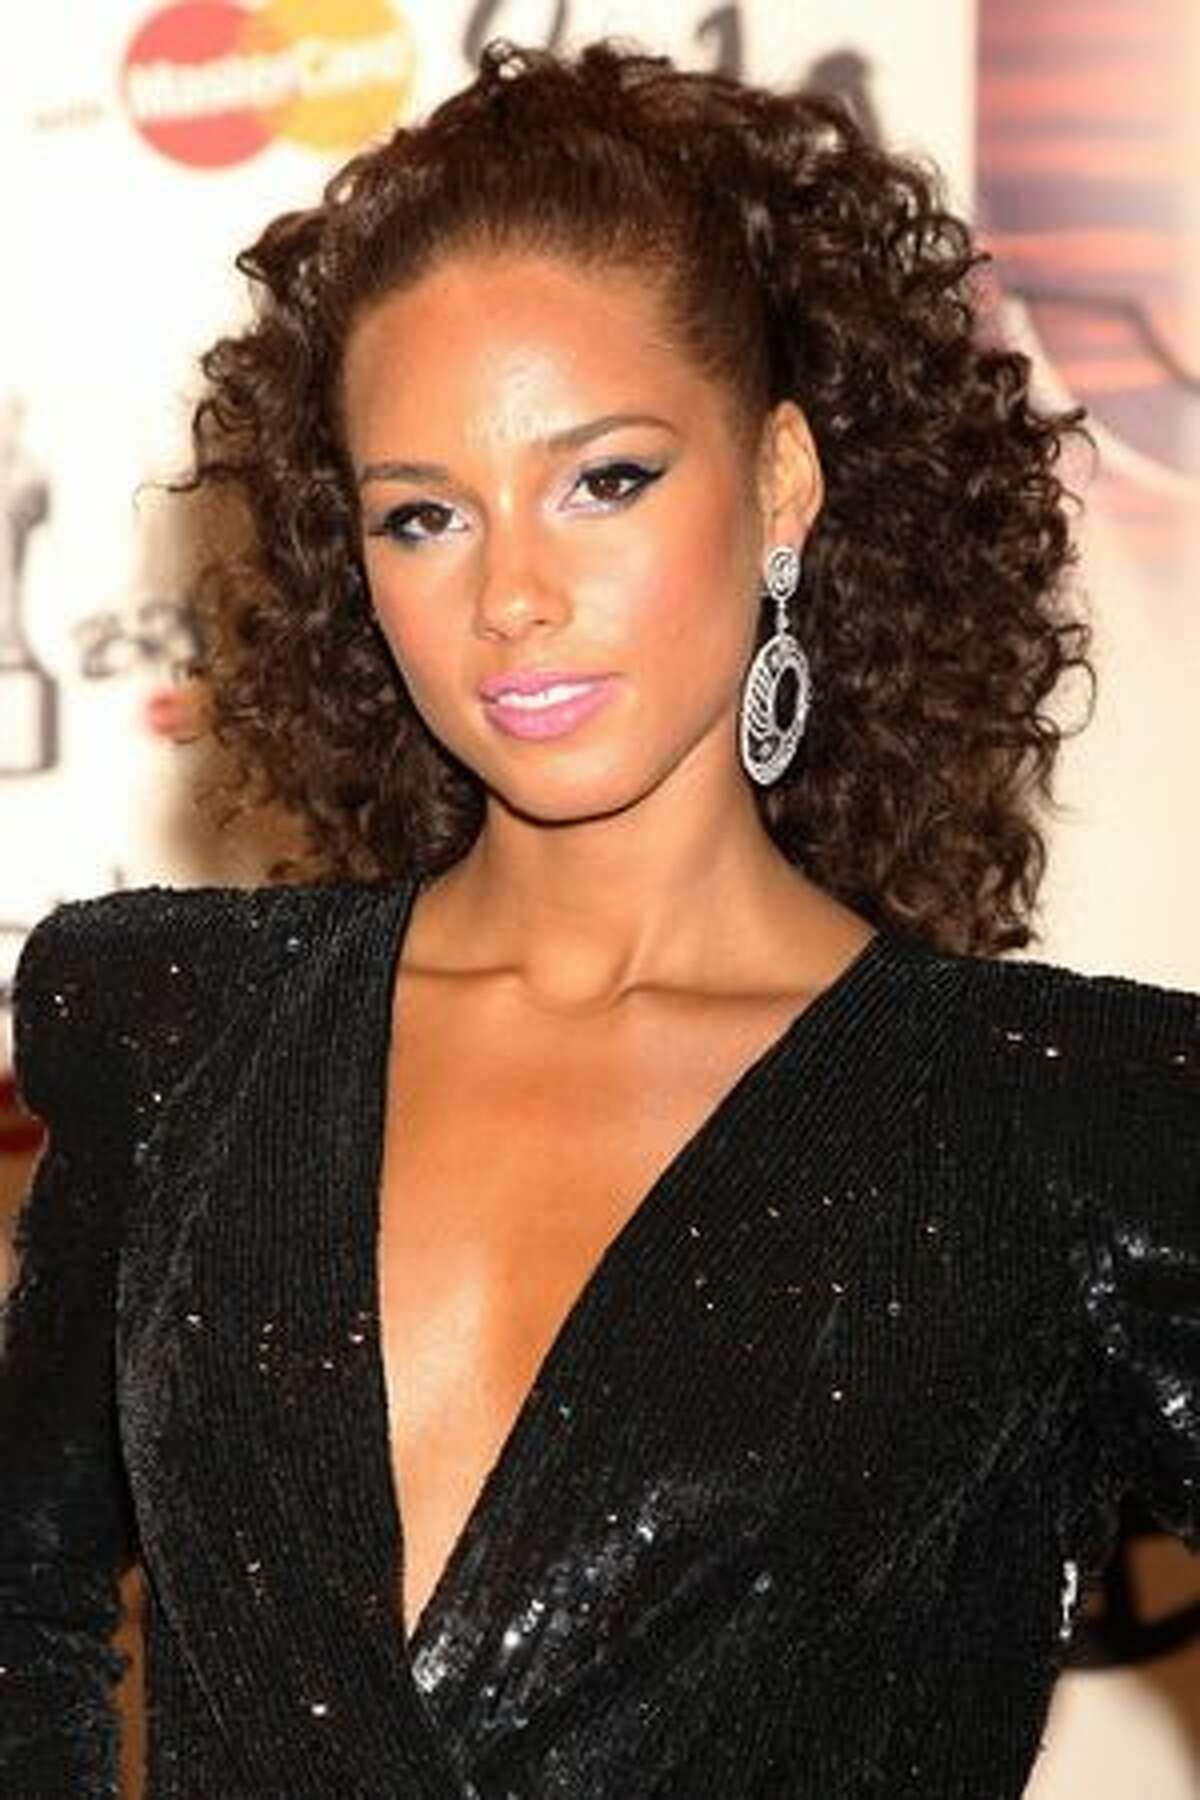 Alicia Keys arrives at The Brit Awards 2010 held at Earls Court on February 16, 2010 in London, England.